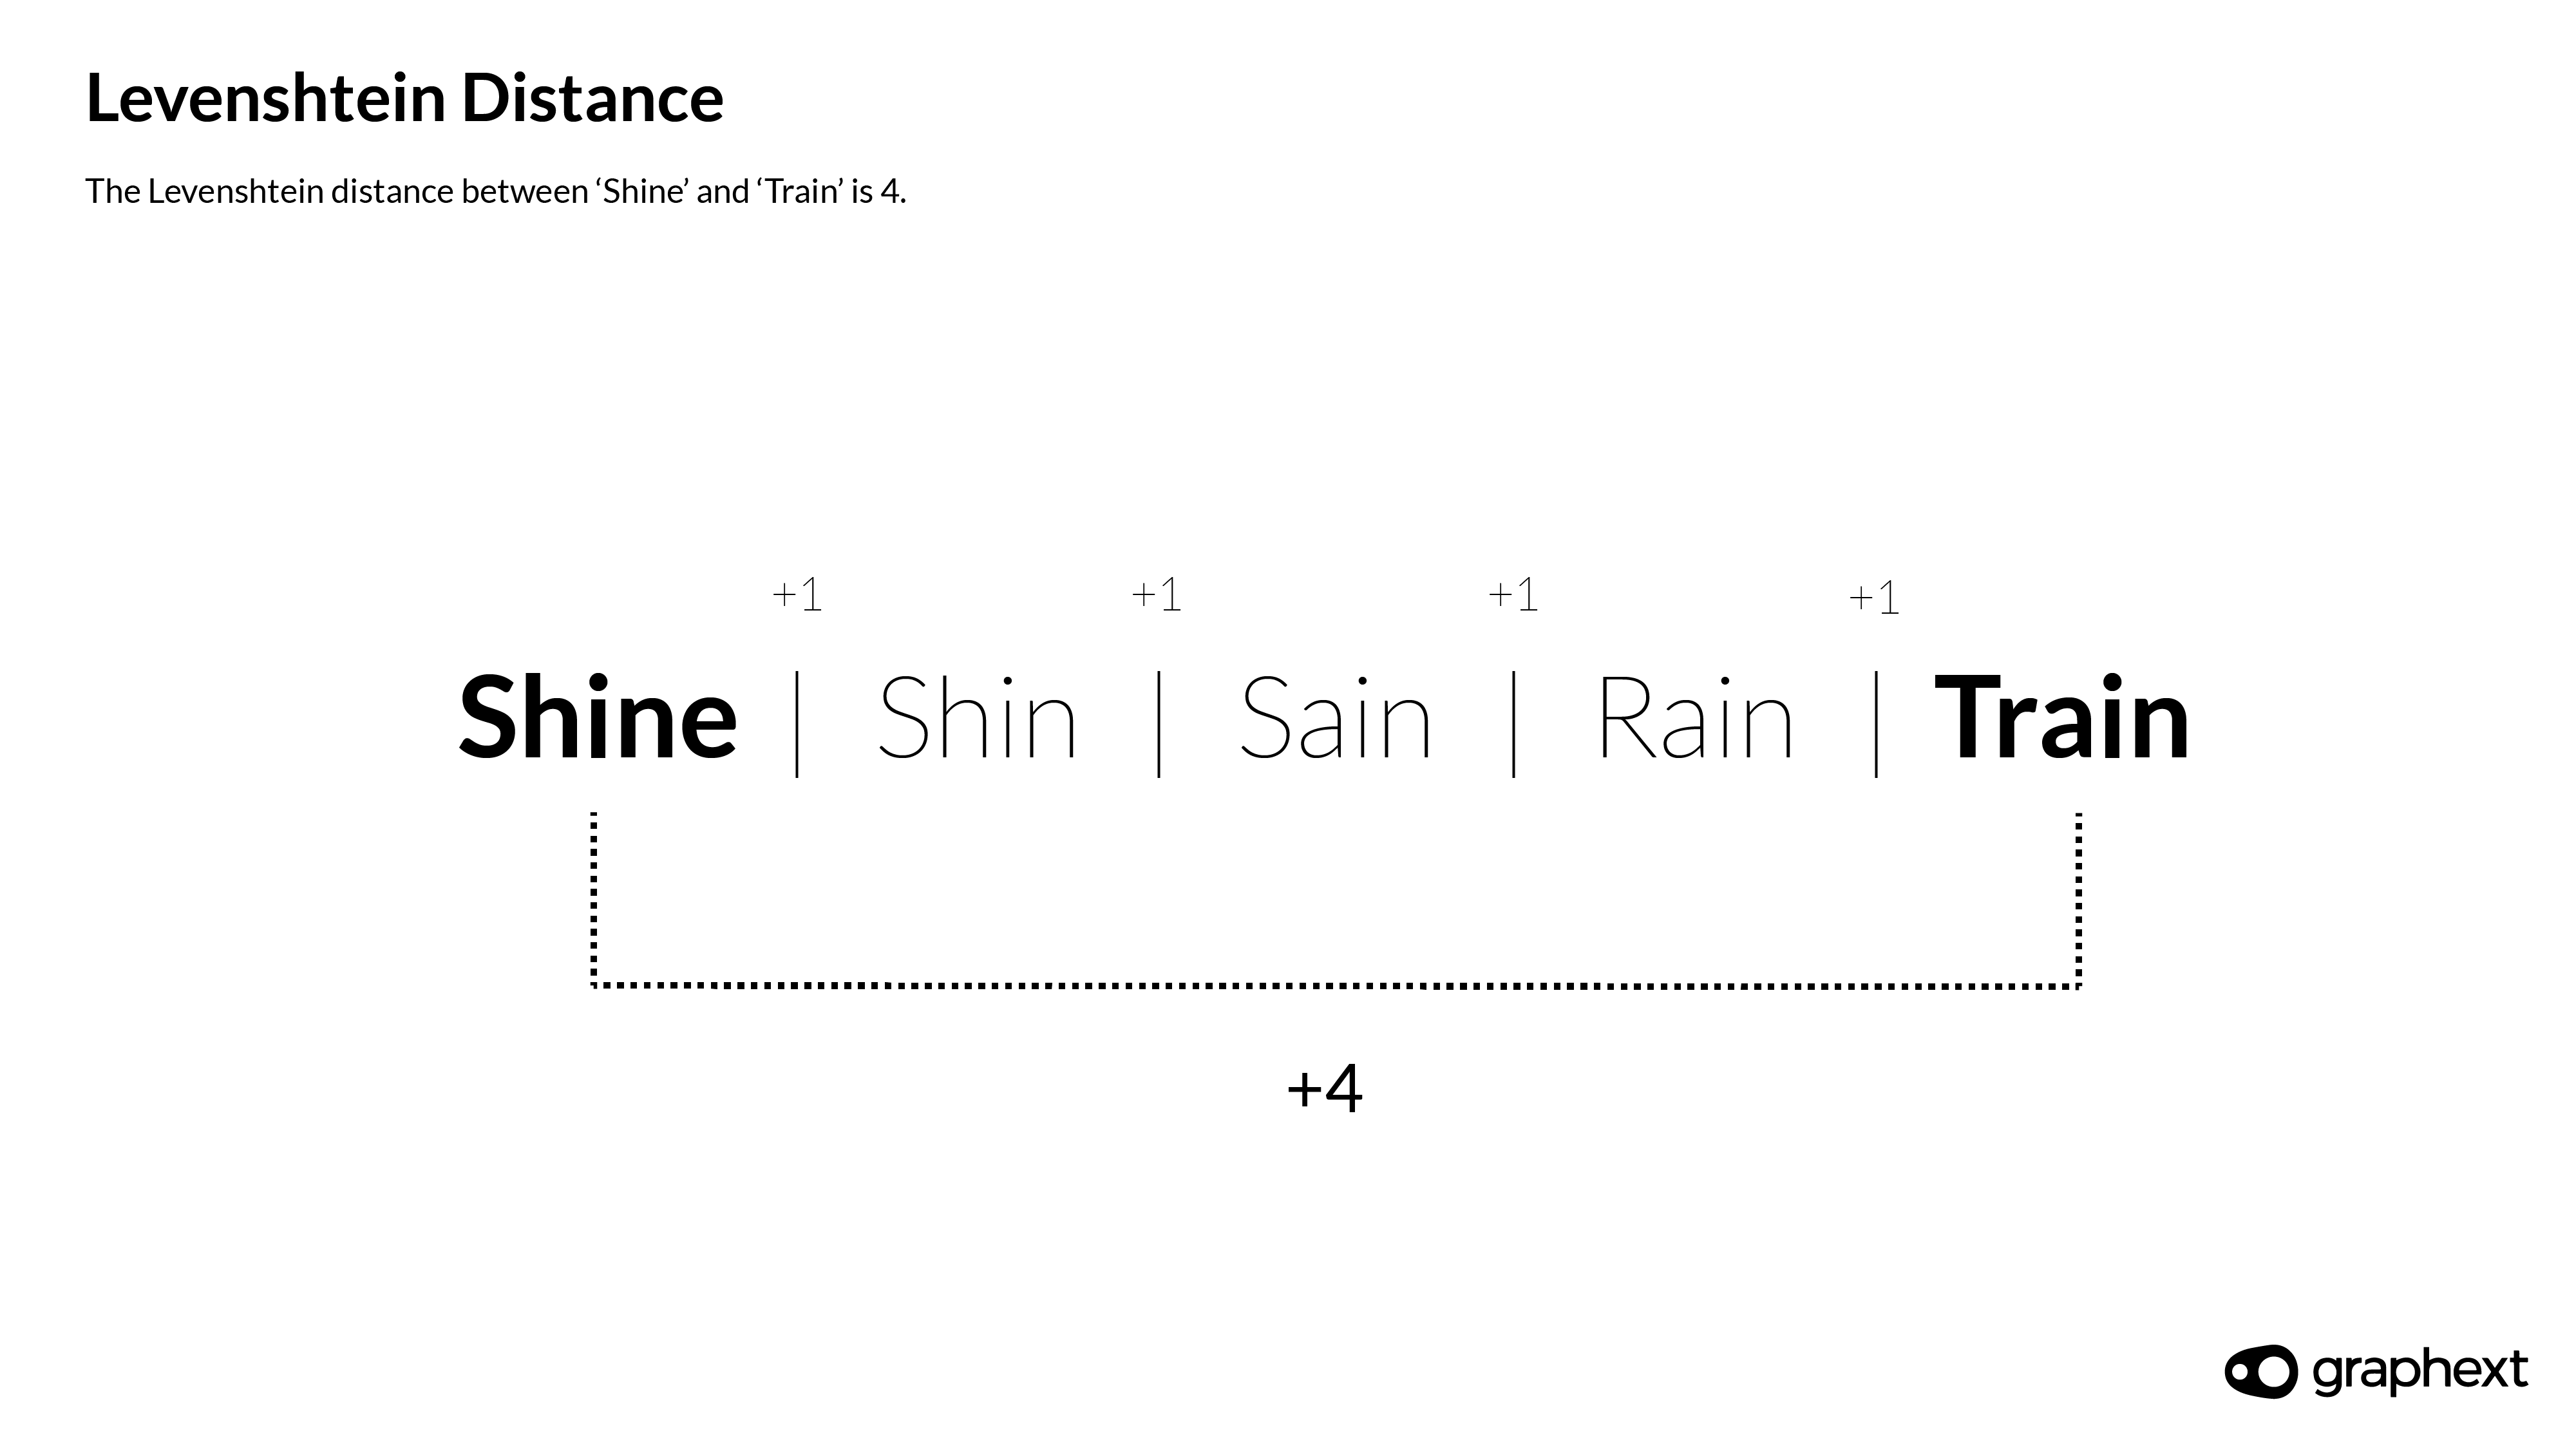 An infographic showing how levenshtein distance between words is calculated.